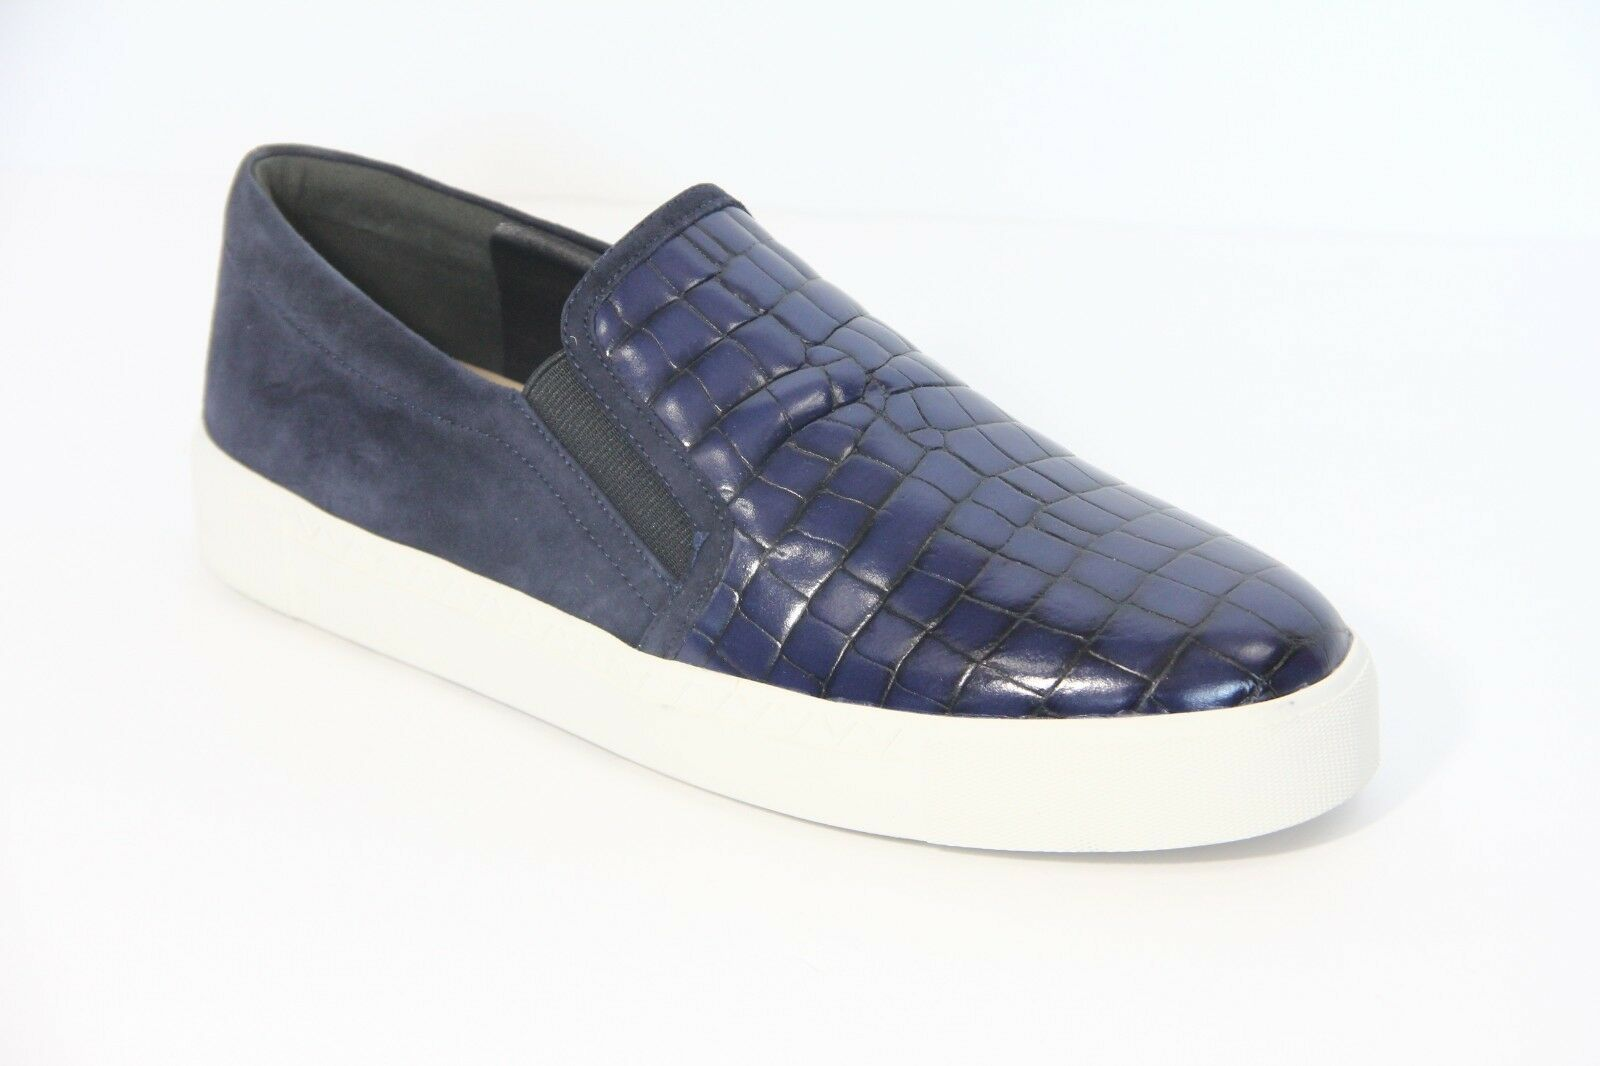 Via Spiga Leather Sneakers sz 8.5 Maliah Slip On shoes Loafer Women navy bluee NEW